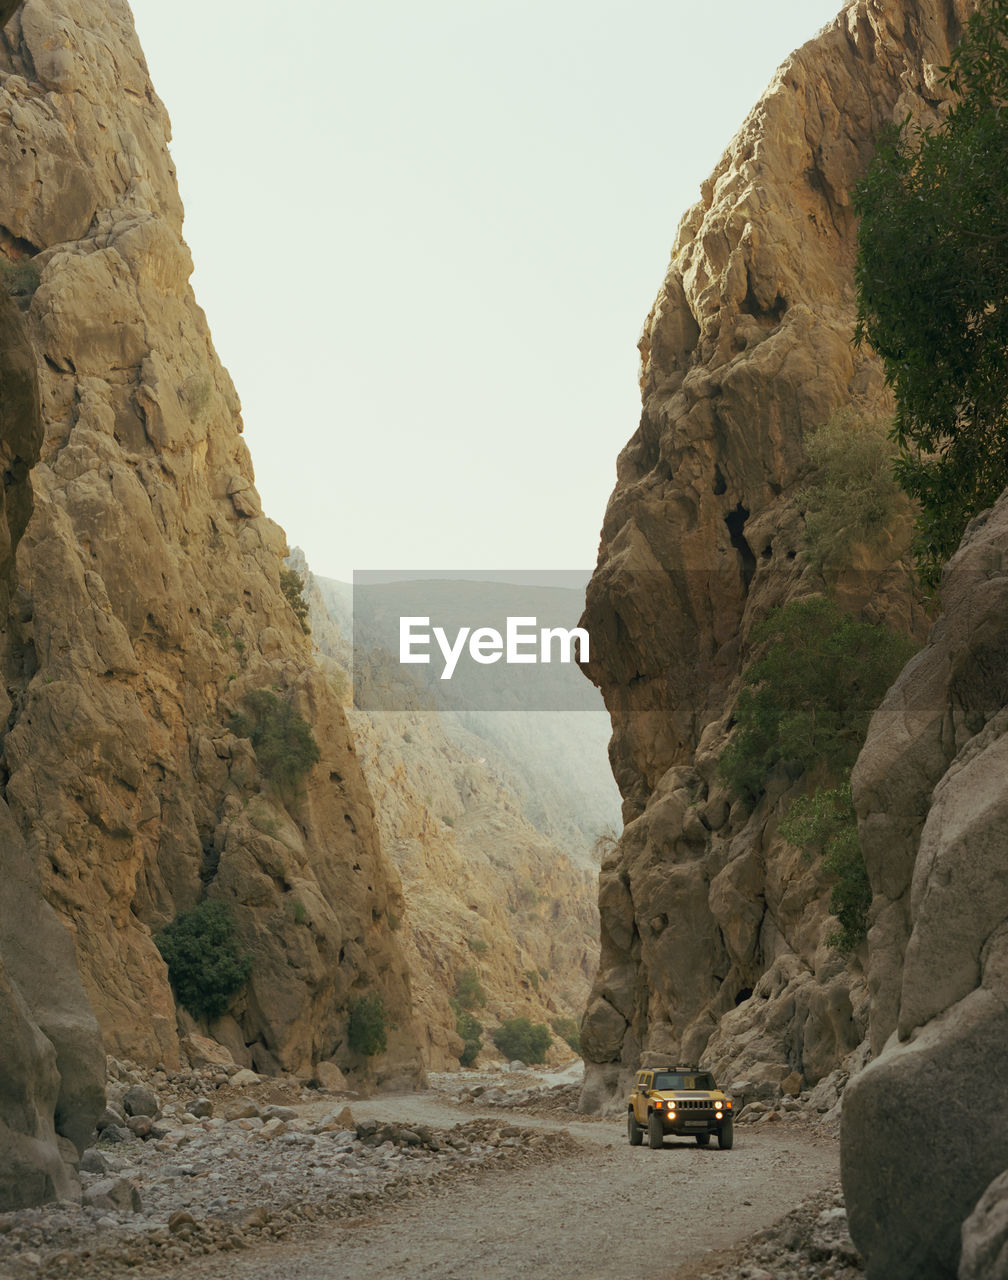 Vehicle on road amidst mountains